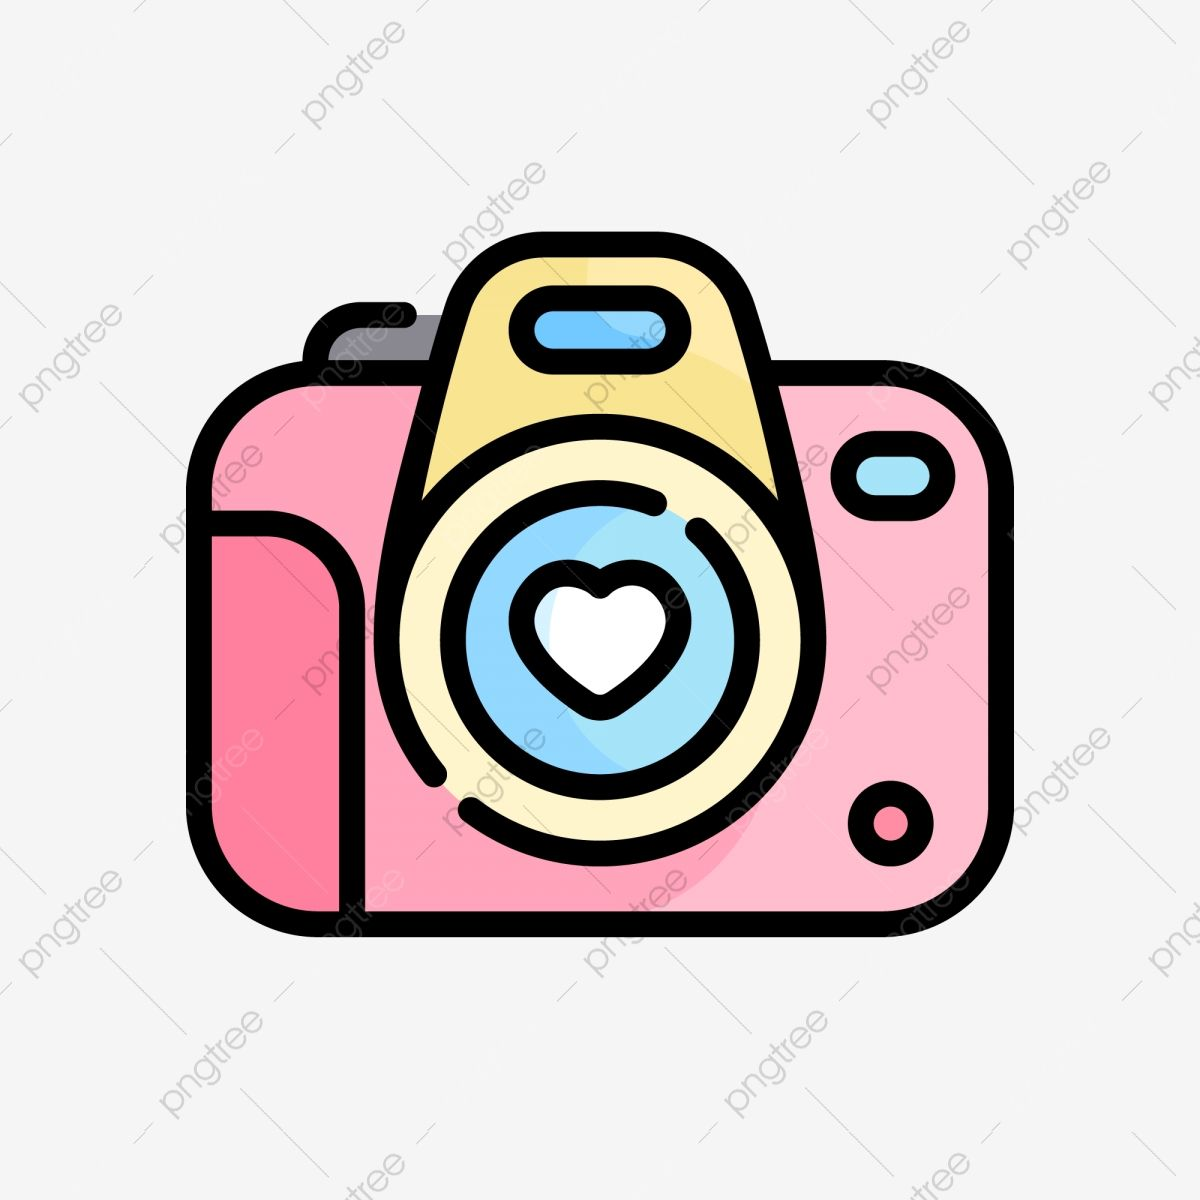 Camera Icon Camera Clipart Camera Icon Png And Vector With Transparent Background For Free Download Camera Icon Camera Logo Clip Art